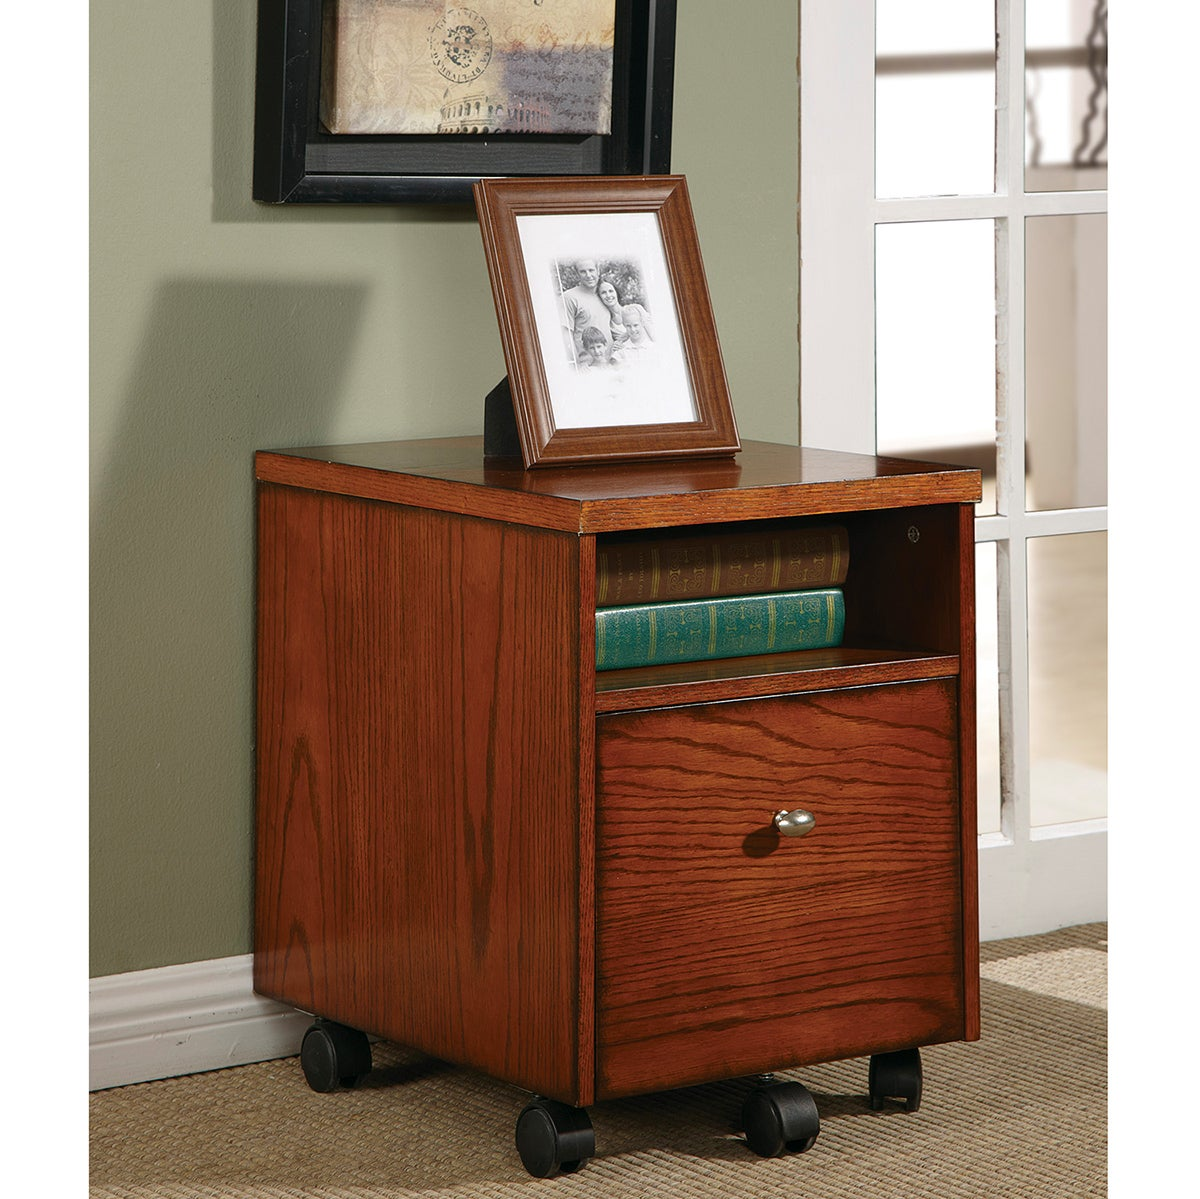 Copper Grove Holmsley Wood And Veneer Mobile File Cabinet Free Shipping On Orders Over 45 7924359